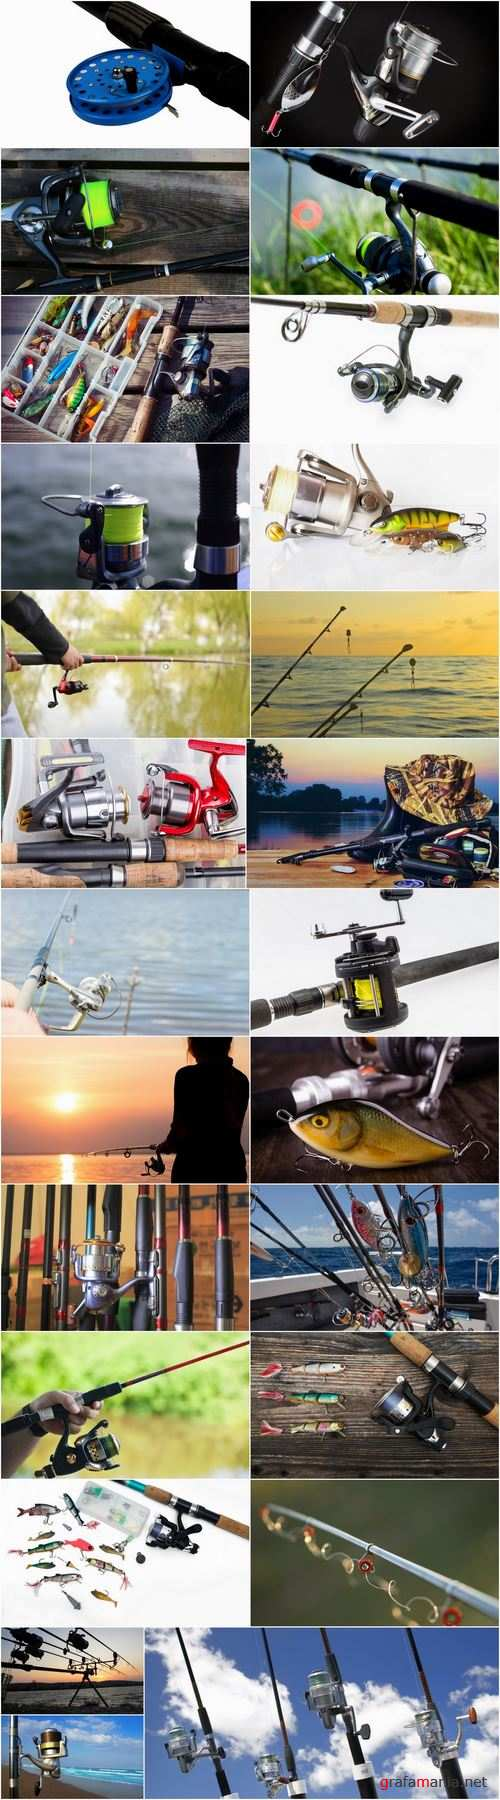 Spinning reel fishing rod fishing line 25 HQ Jpeg